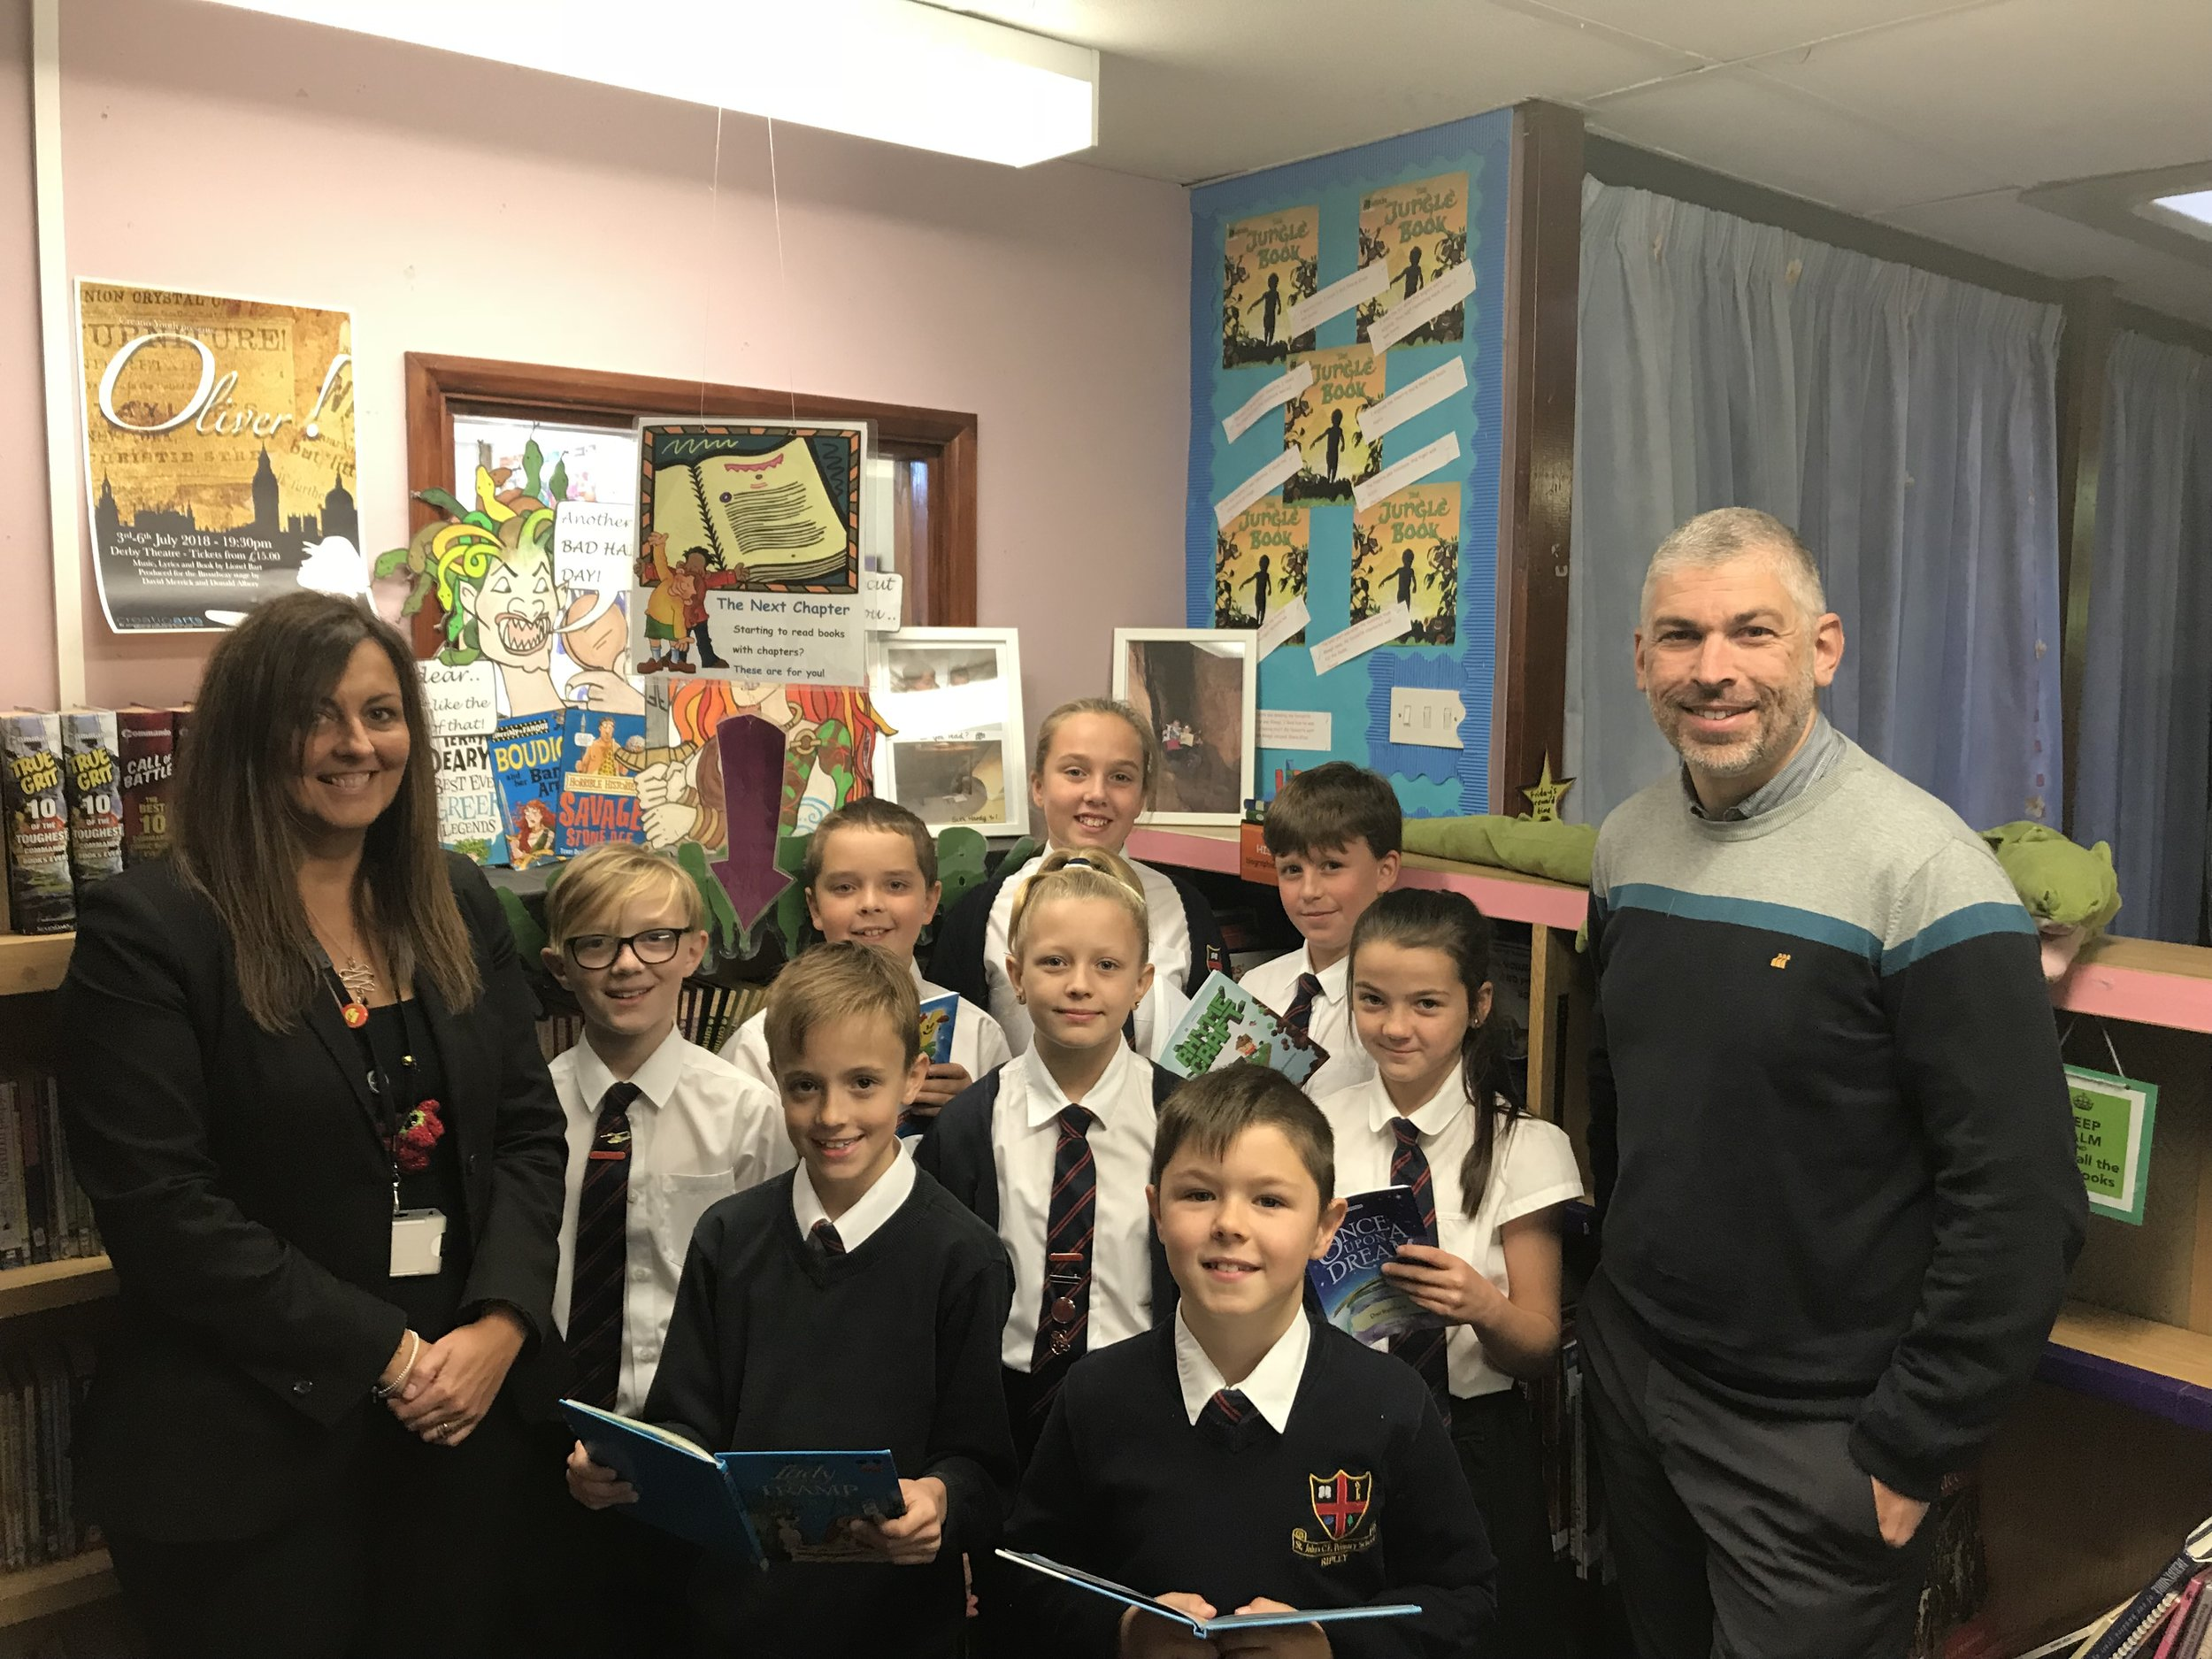 Year 6 youngsters from St Johns School, Ripley with head teacher Wendy Rose and deputy head Chris Howarth.